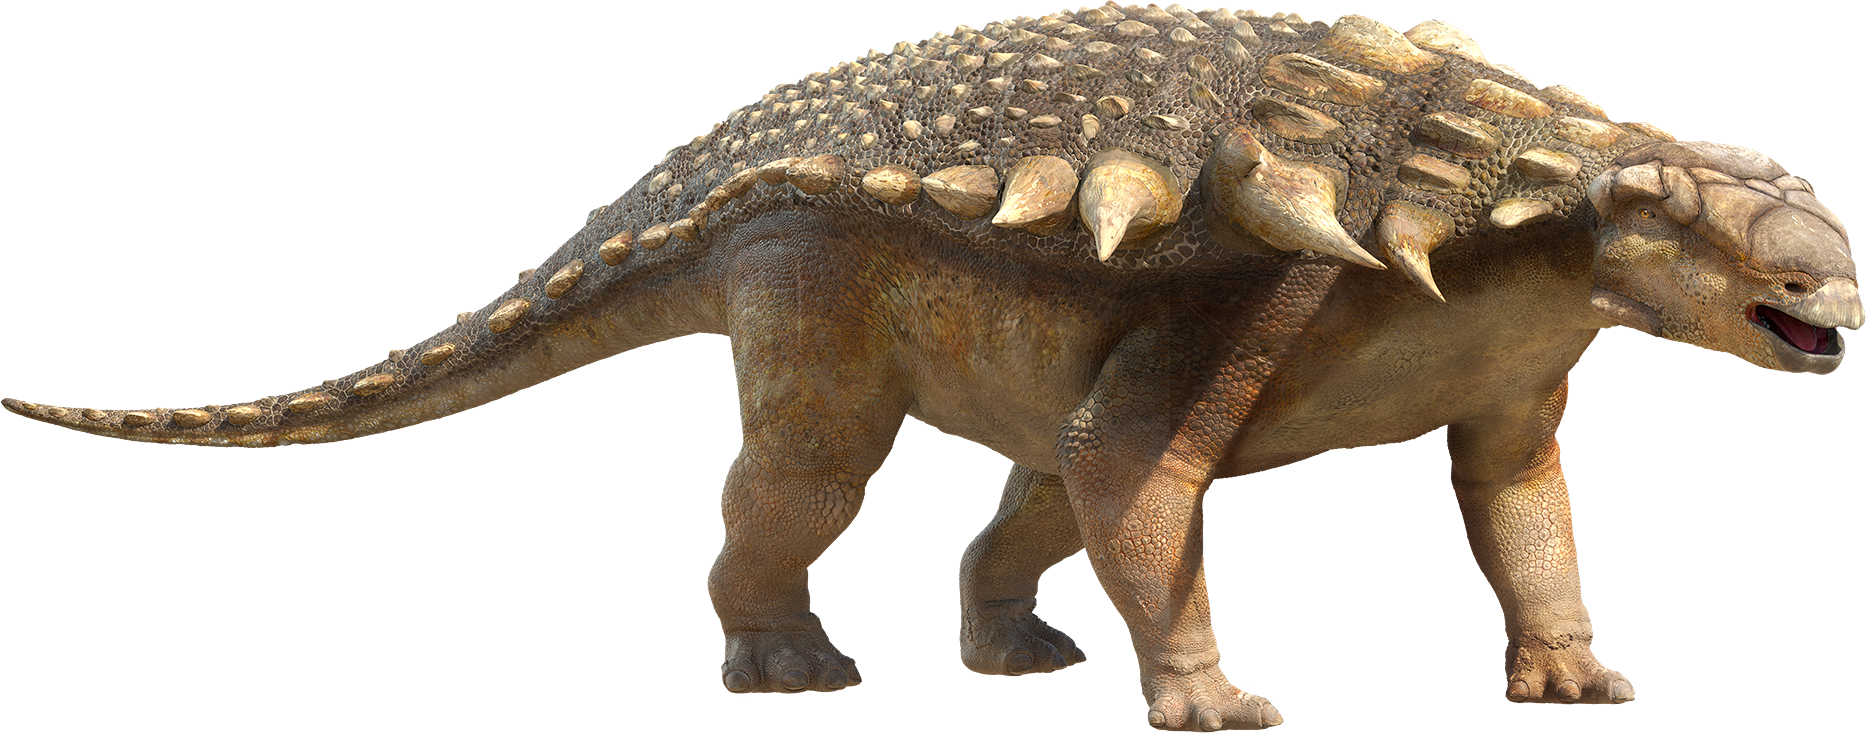 Dinosaurs - Dinosaur, facts, pictures, and information Ankylosaurus facts and pictures